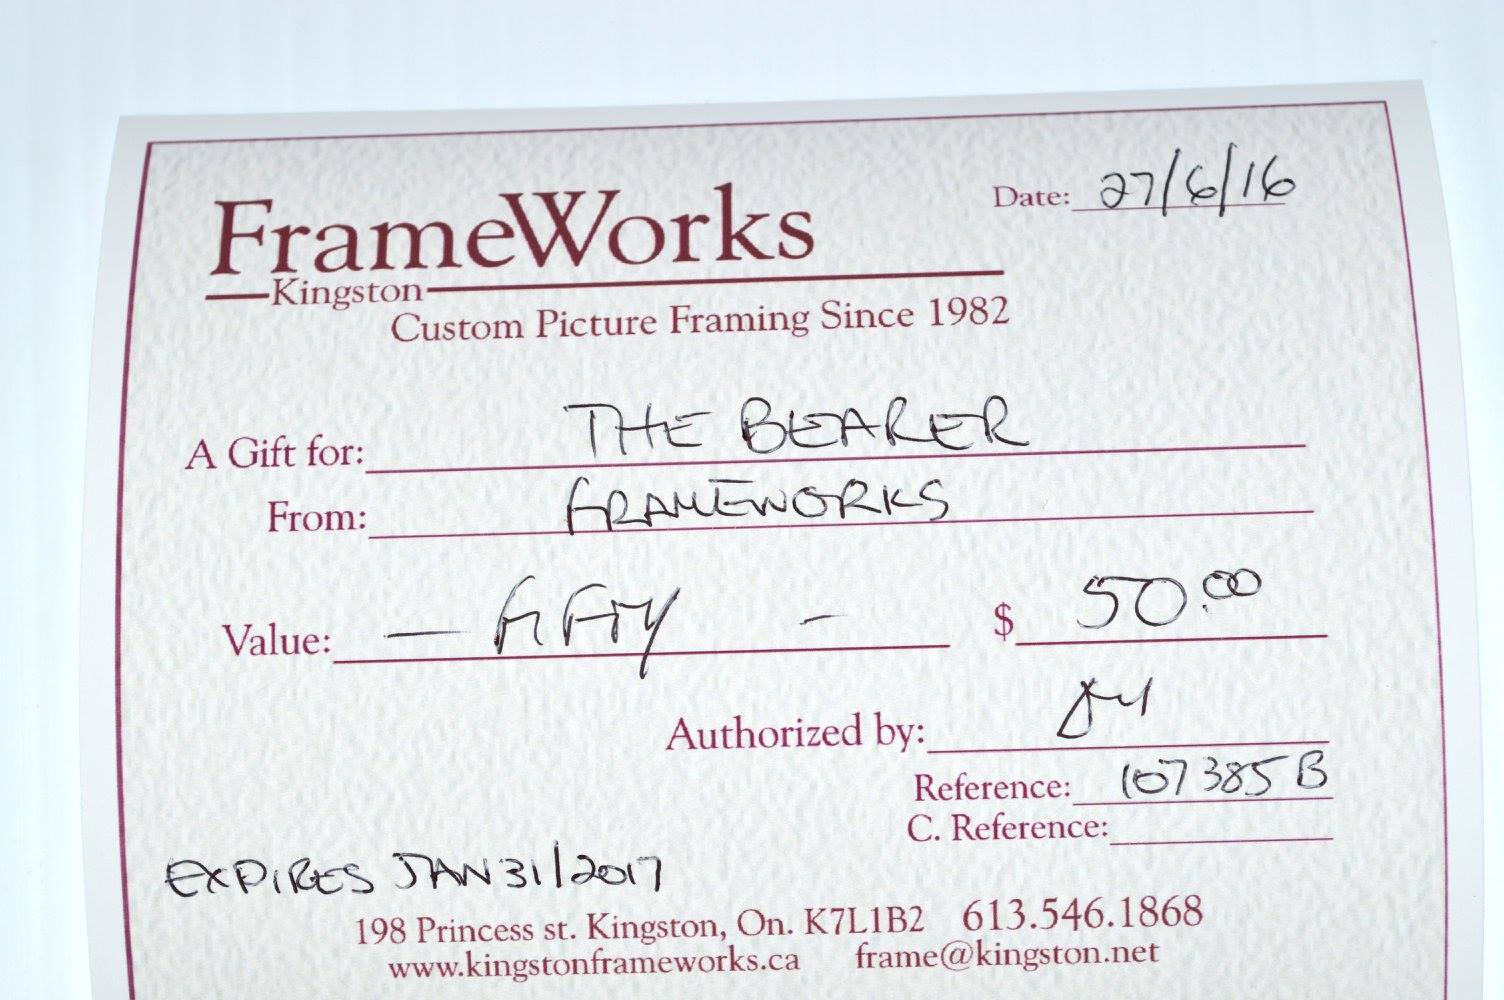 $50 Gift Certificates Donated by Frameworks